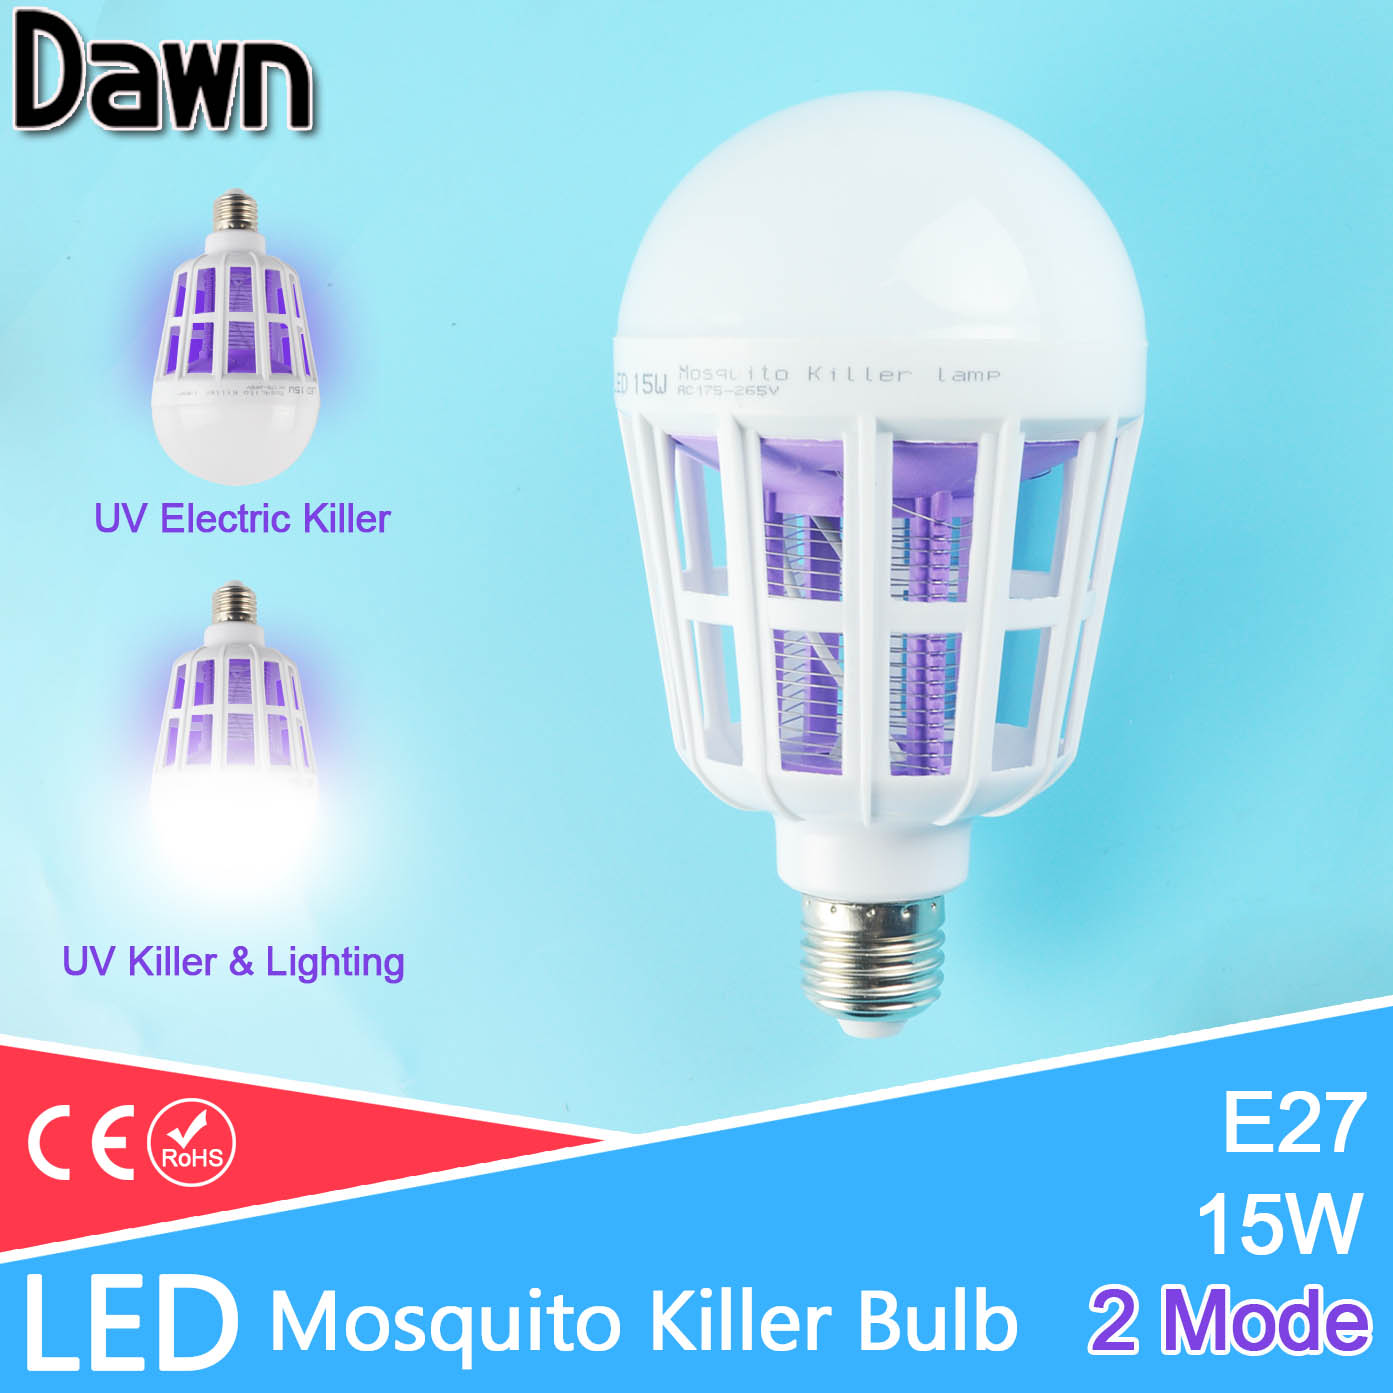 2Mod E27 LED Mosquito Killer Lamp Bulb UV Electric Trap Light Electronic  Anti Insect Bug Wasp. Popular Mosquito Killer Bulb Buy Cheap Mosquito Killer Bulb lots